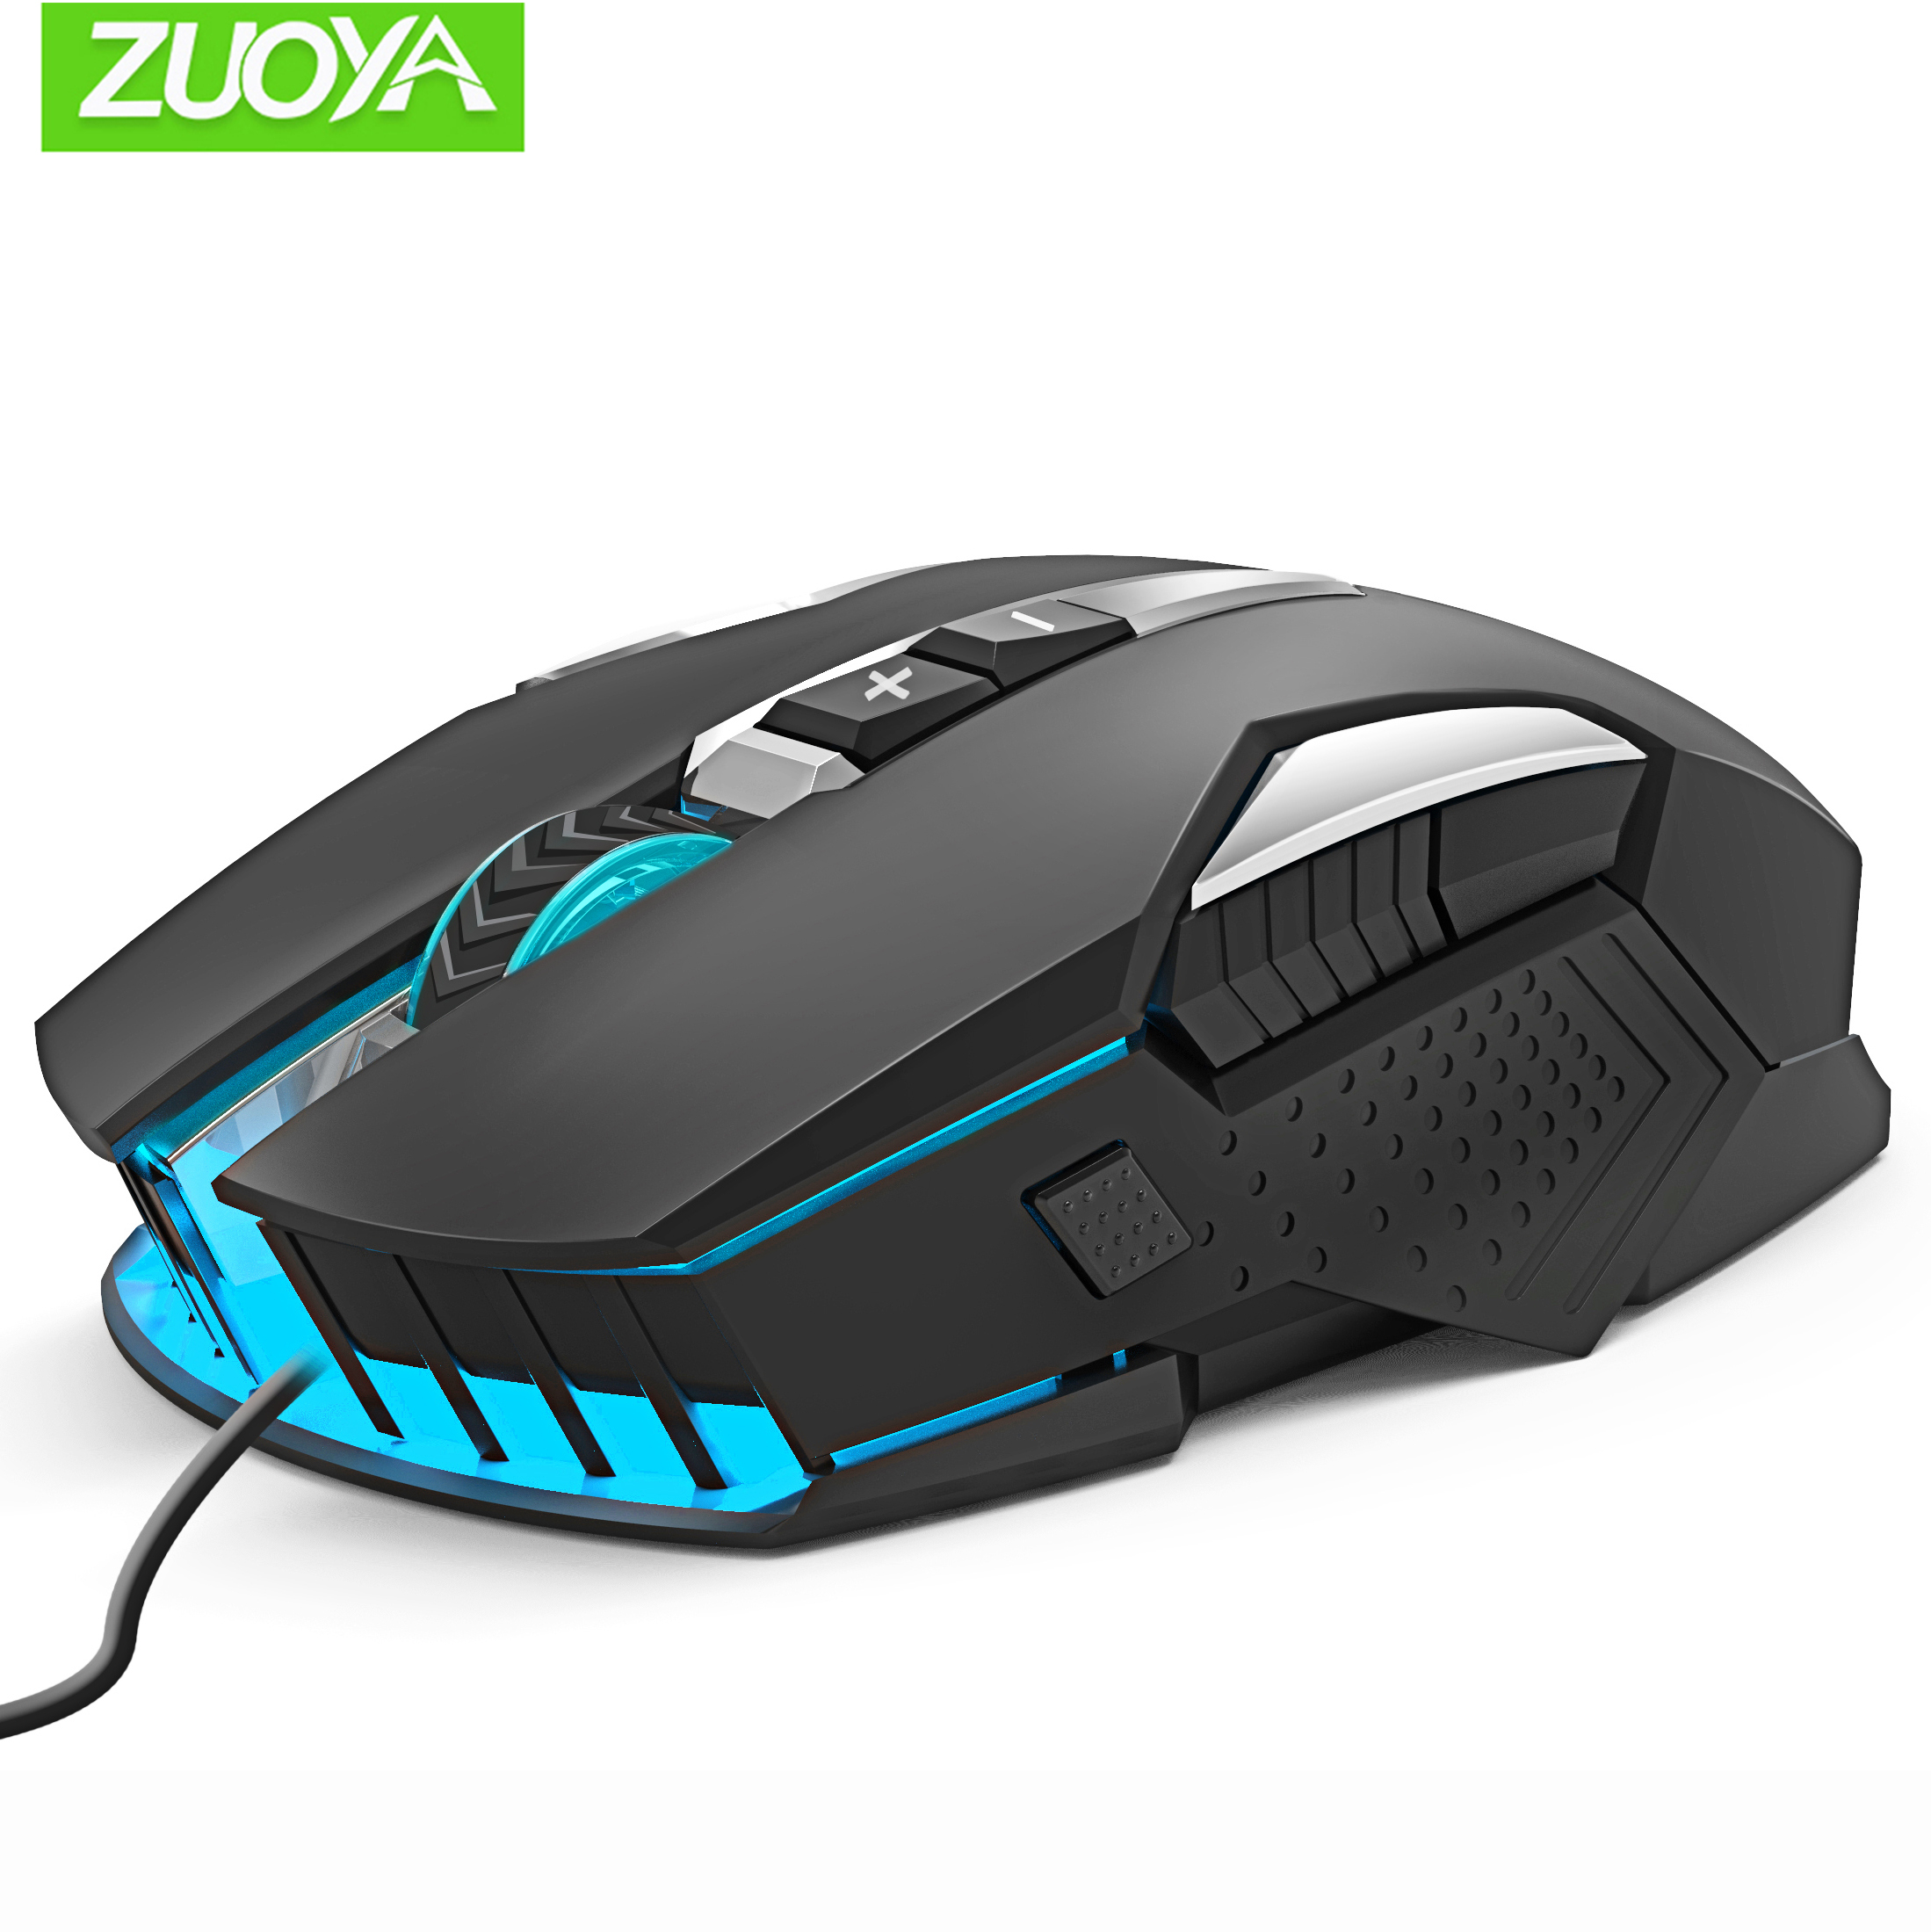 ZUOYA Gaming Mouse DPI Adjustable Wired Mouse USB Optical LED Computer Mice for Laptop PC Game Professional Gamer title=